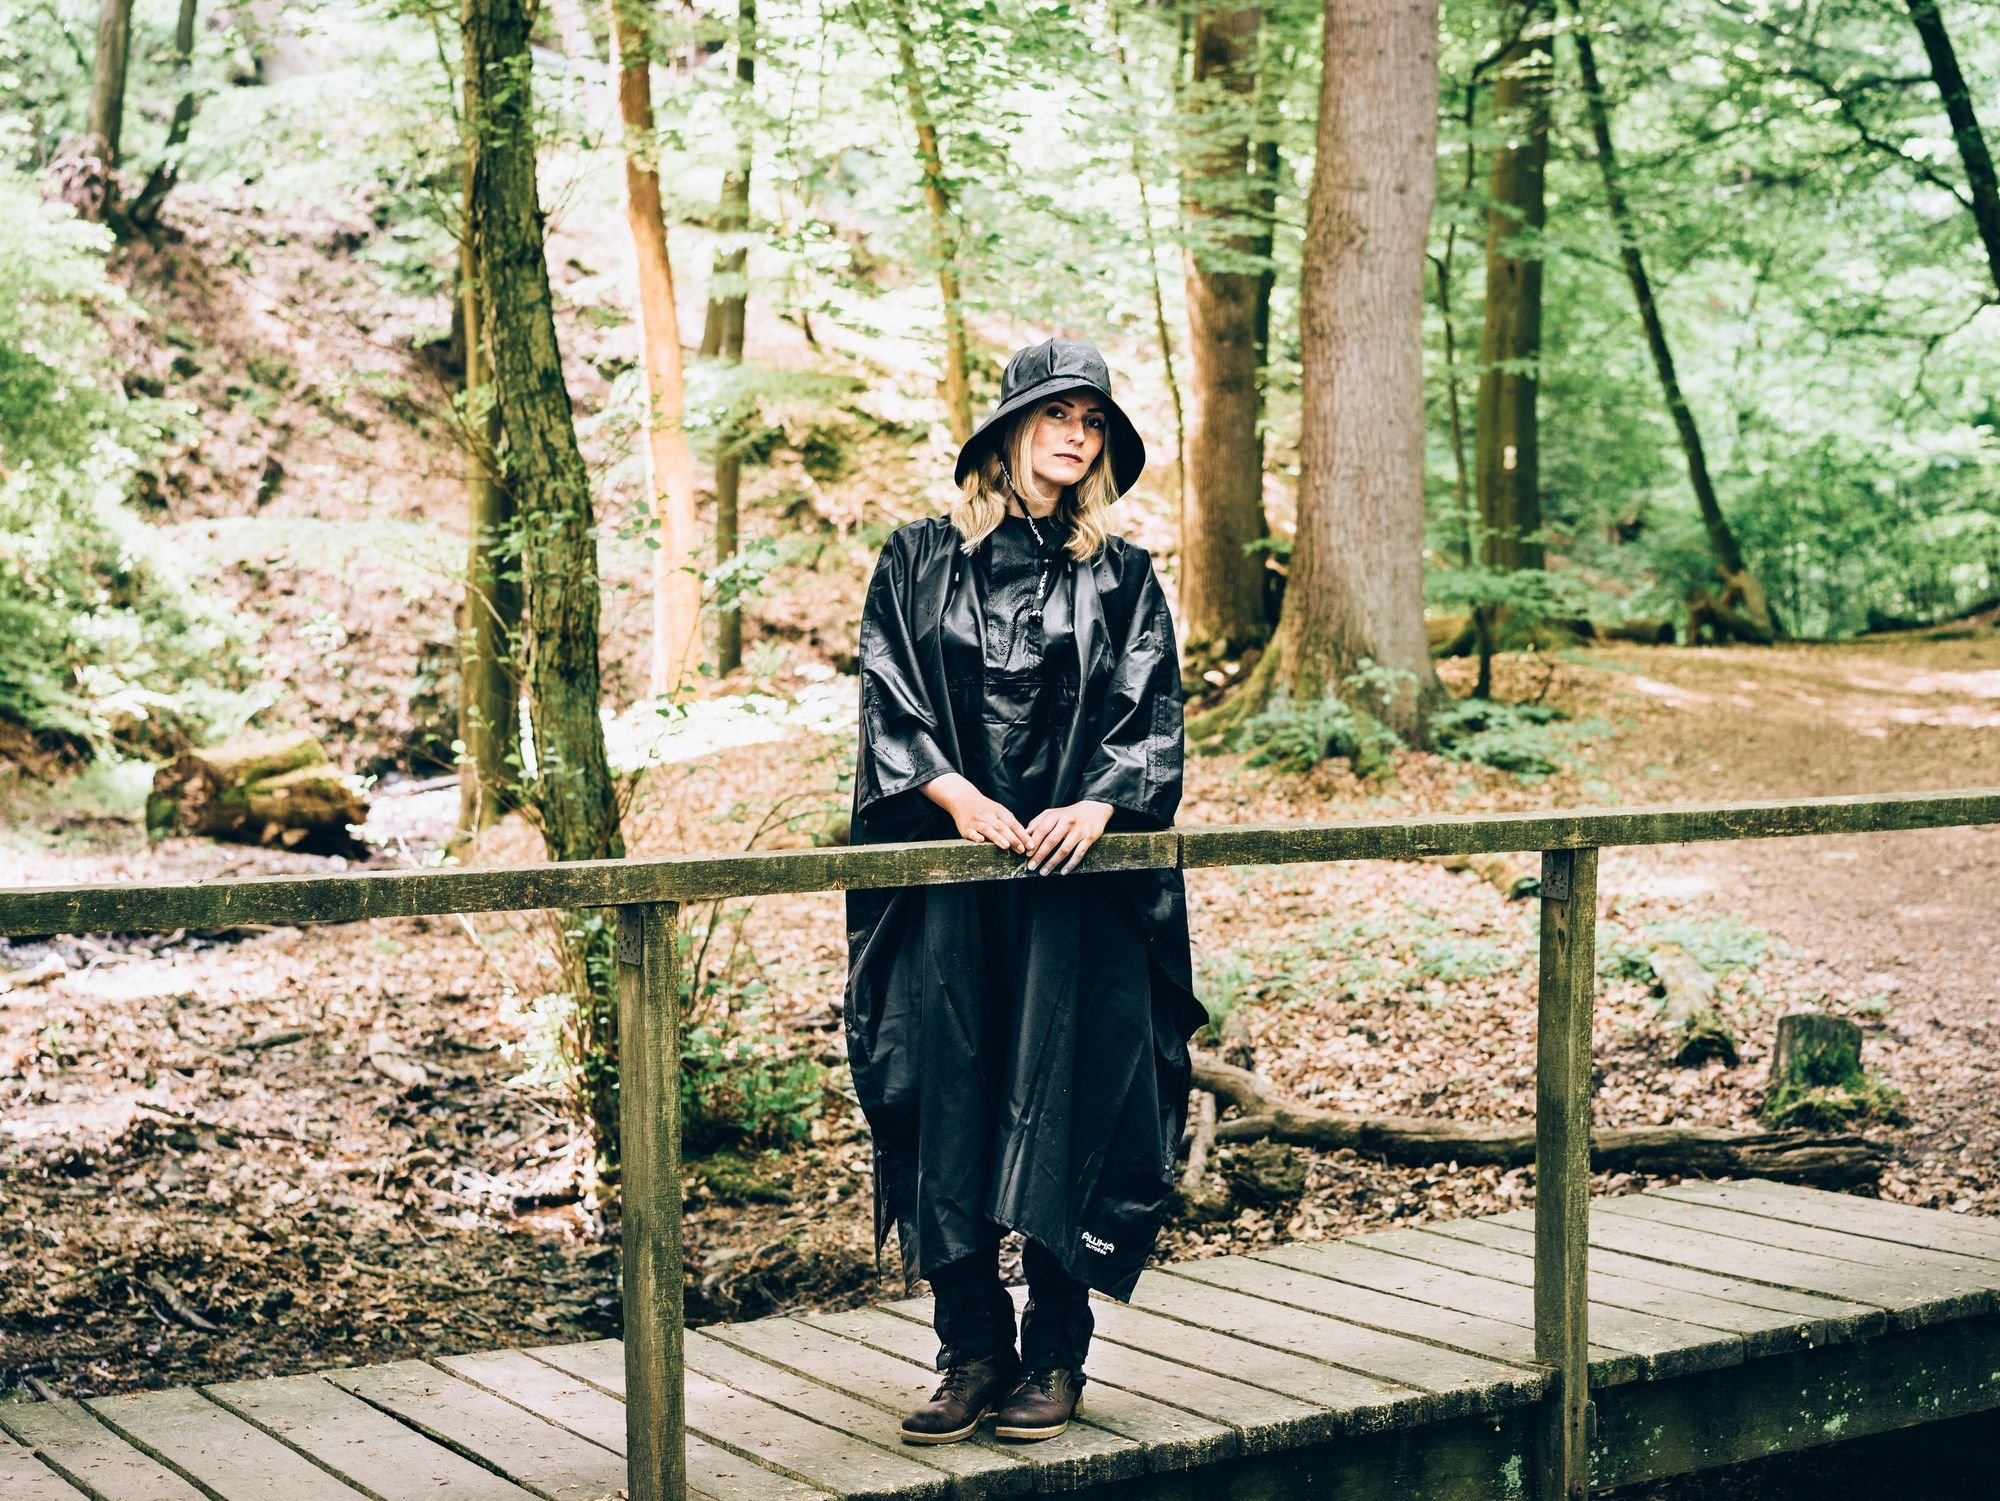 91EnoTtn6WL - AWHA rain poncho black, unisex - the extra long rain cover with a zipper and chest pocket